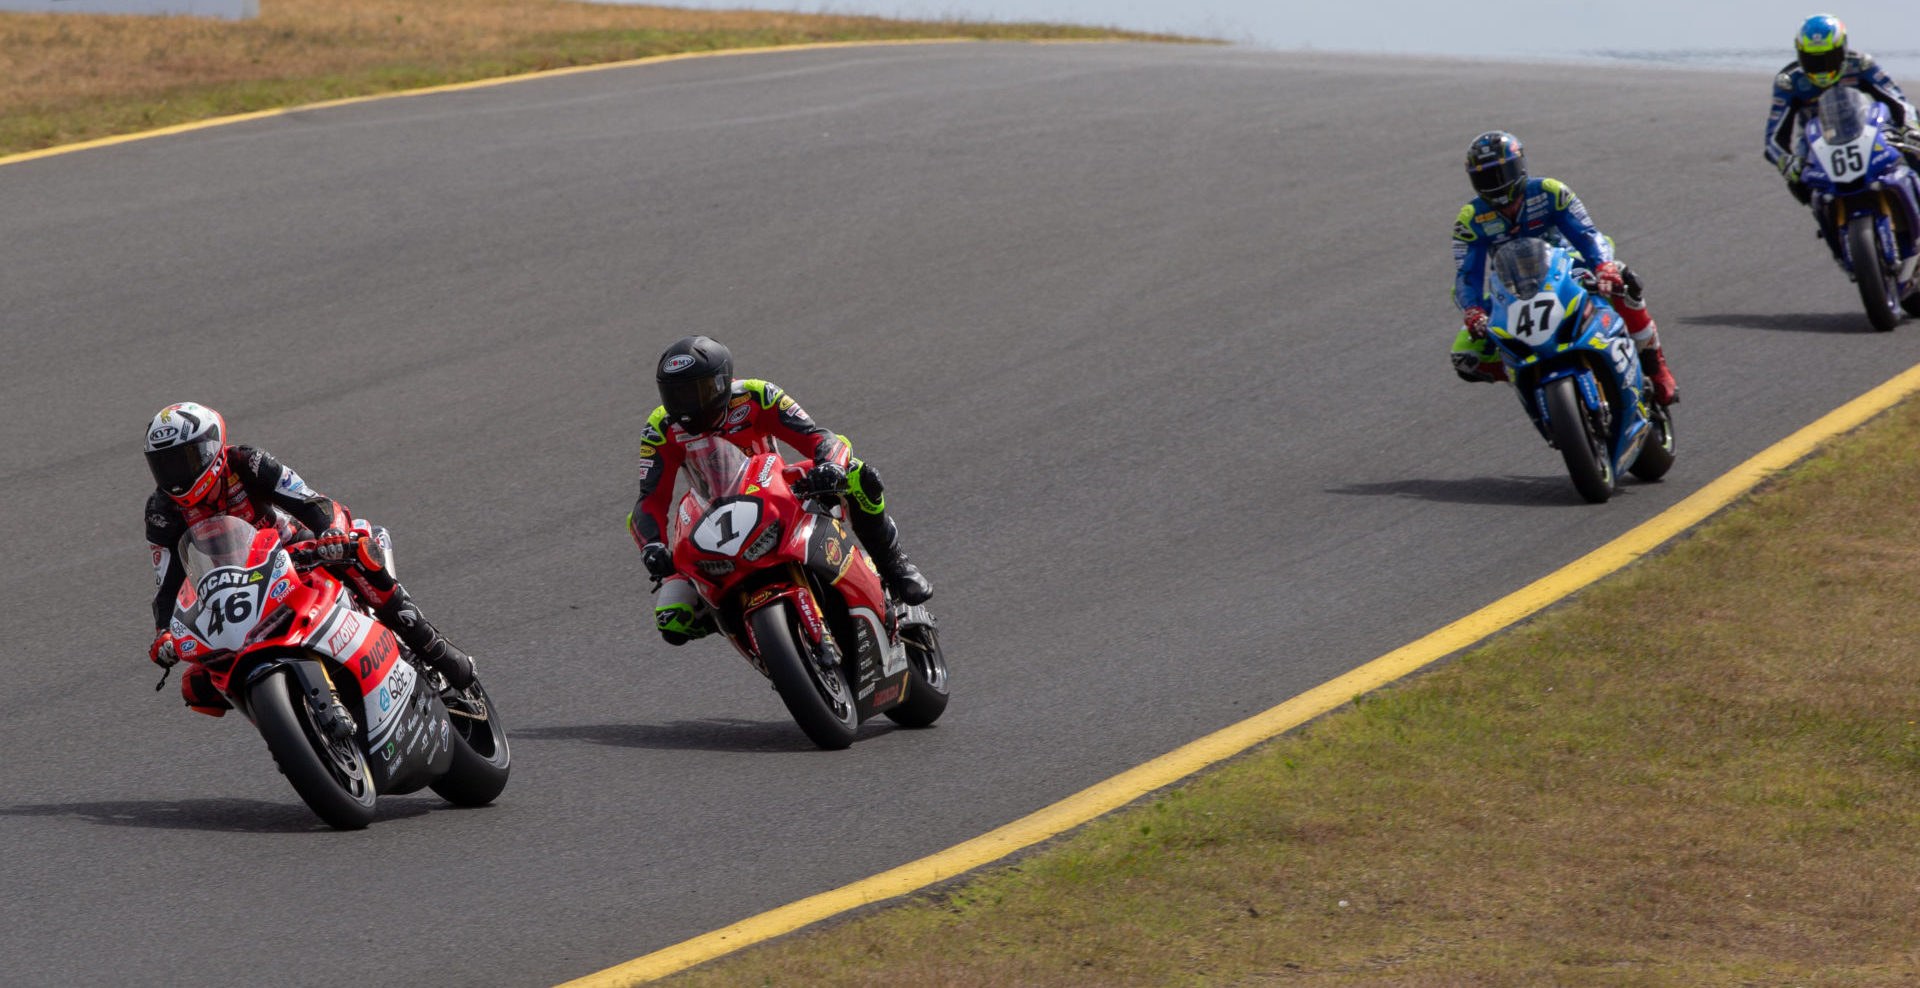 Mike Jones (46) leads Troy Herfoss (1), Wayne Maxwell (47), and Cru Halliday (65) at Sydney Motorsport Park. Photo by Andrew Gosling/TBG Sport, courtesy of Motorcycling Australia.